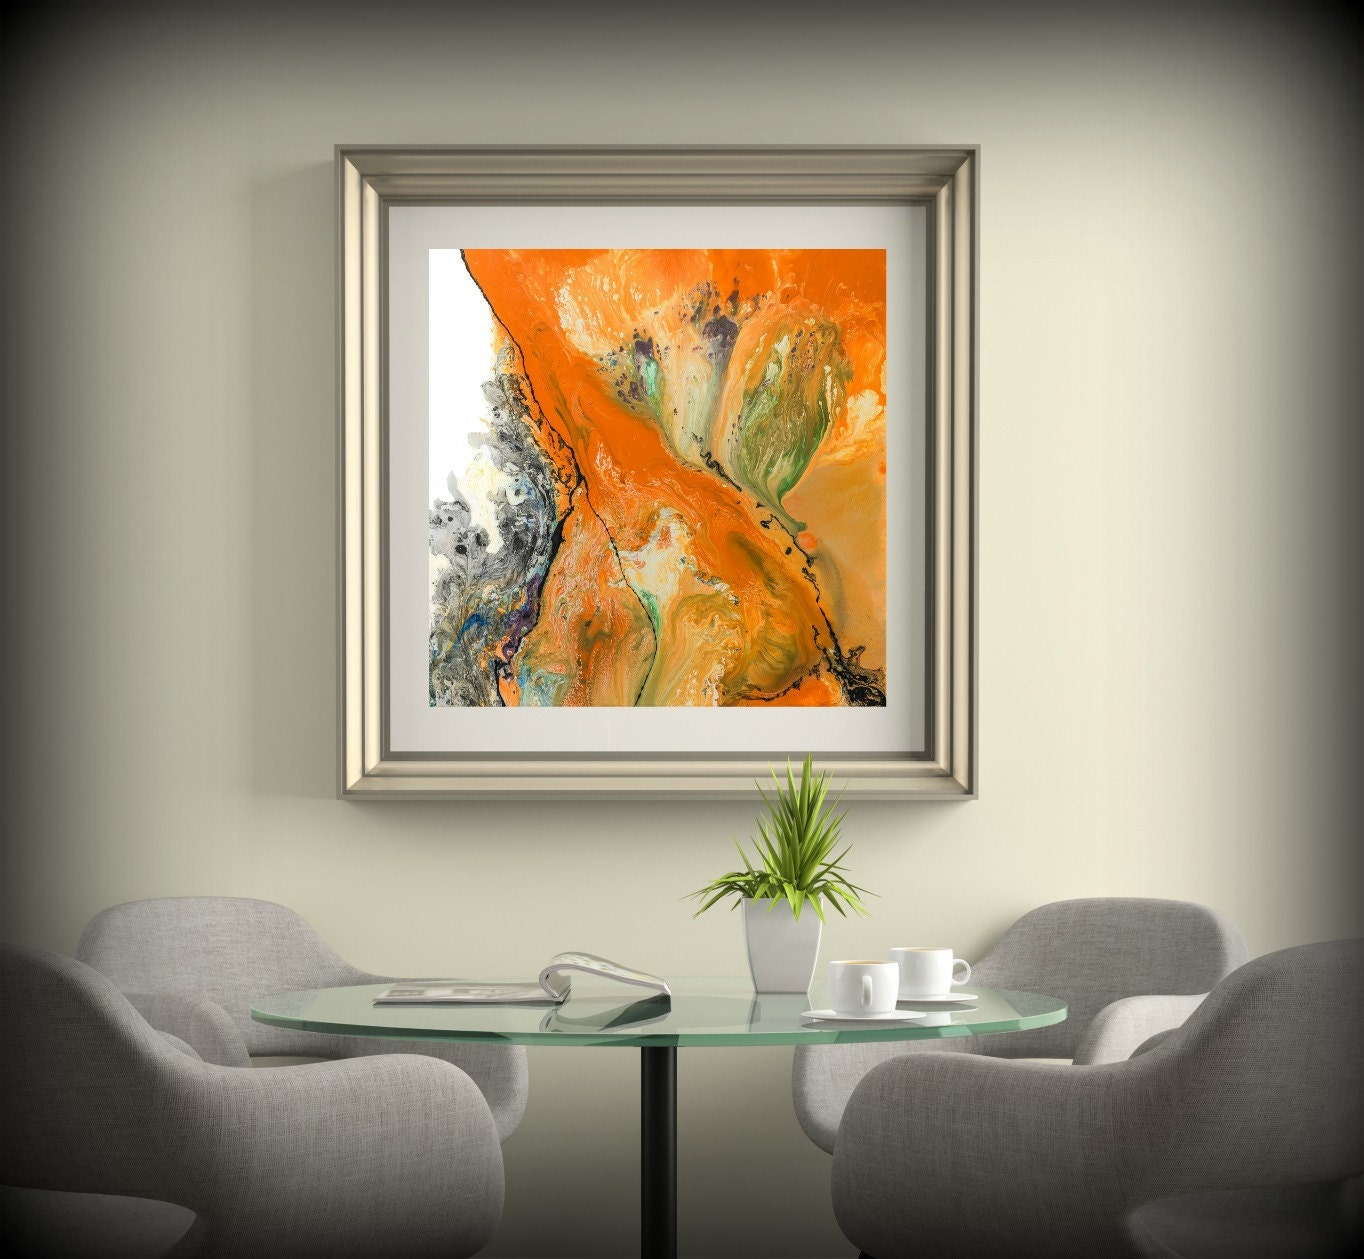 Dining Room Wall Art Images Of Living Room Decor Square Wall Decor Orange Wall Art Dining